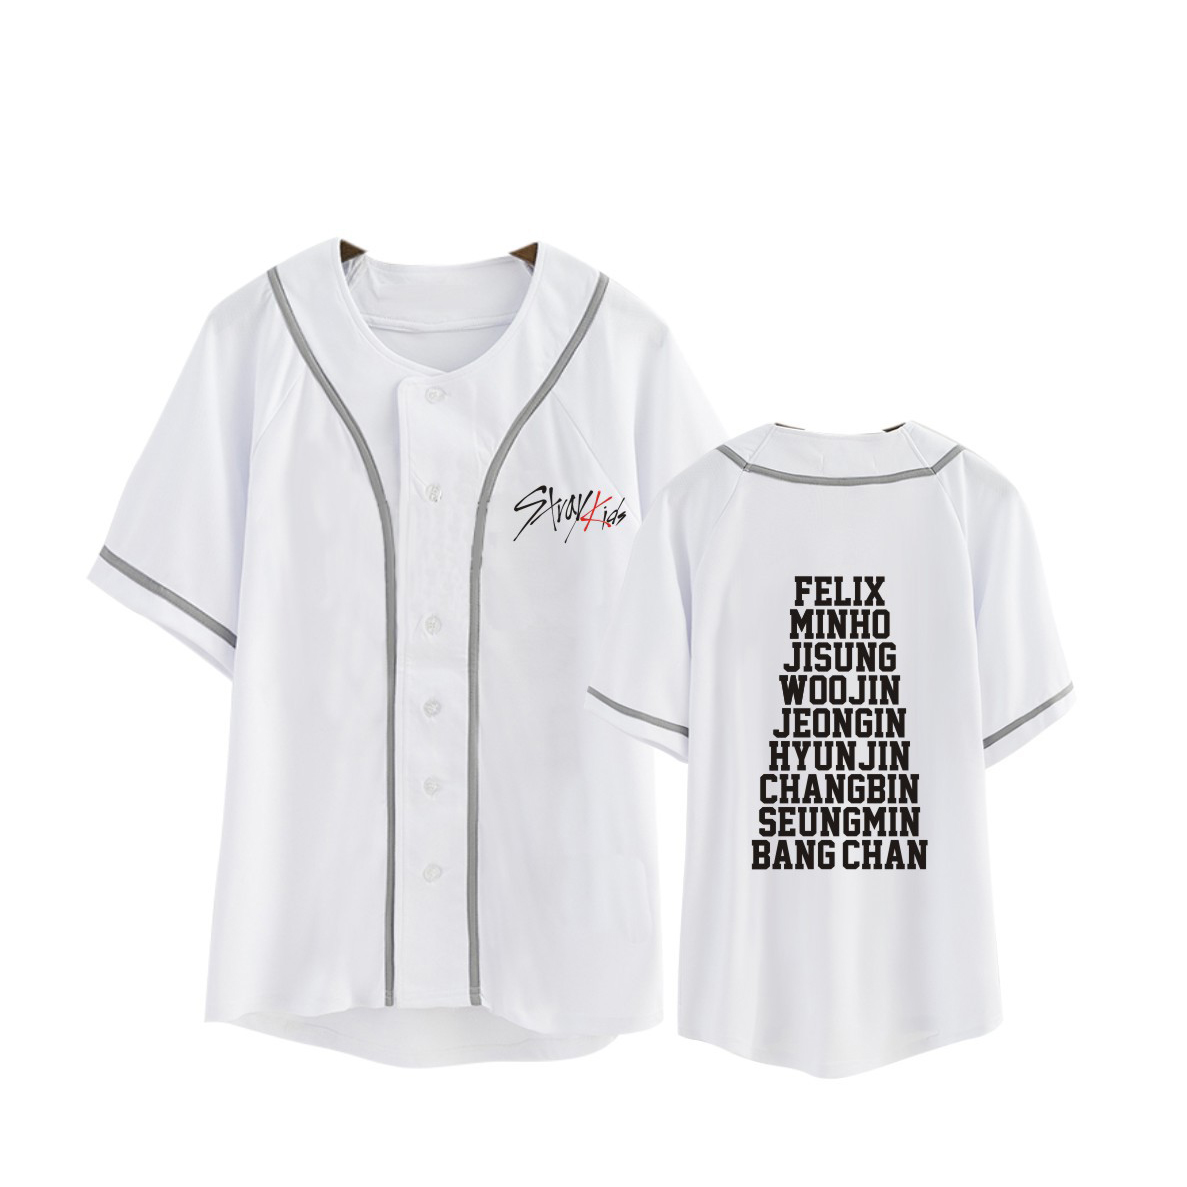 d0a9df7d30ad6 STRAY KIDS Print Baseball T-Shirt